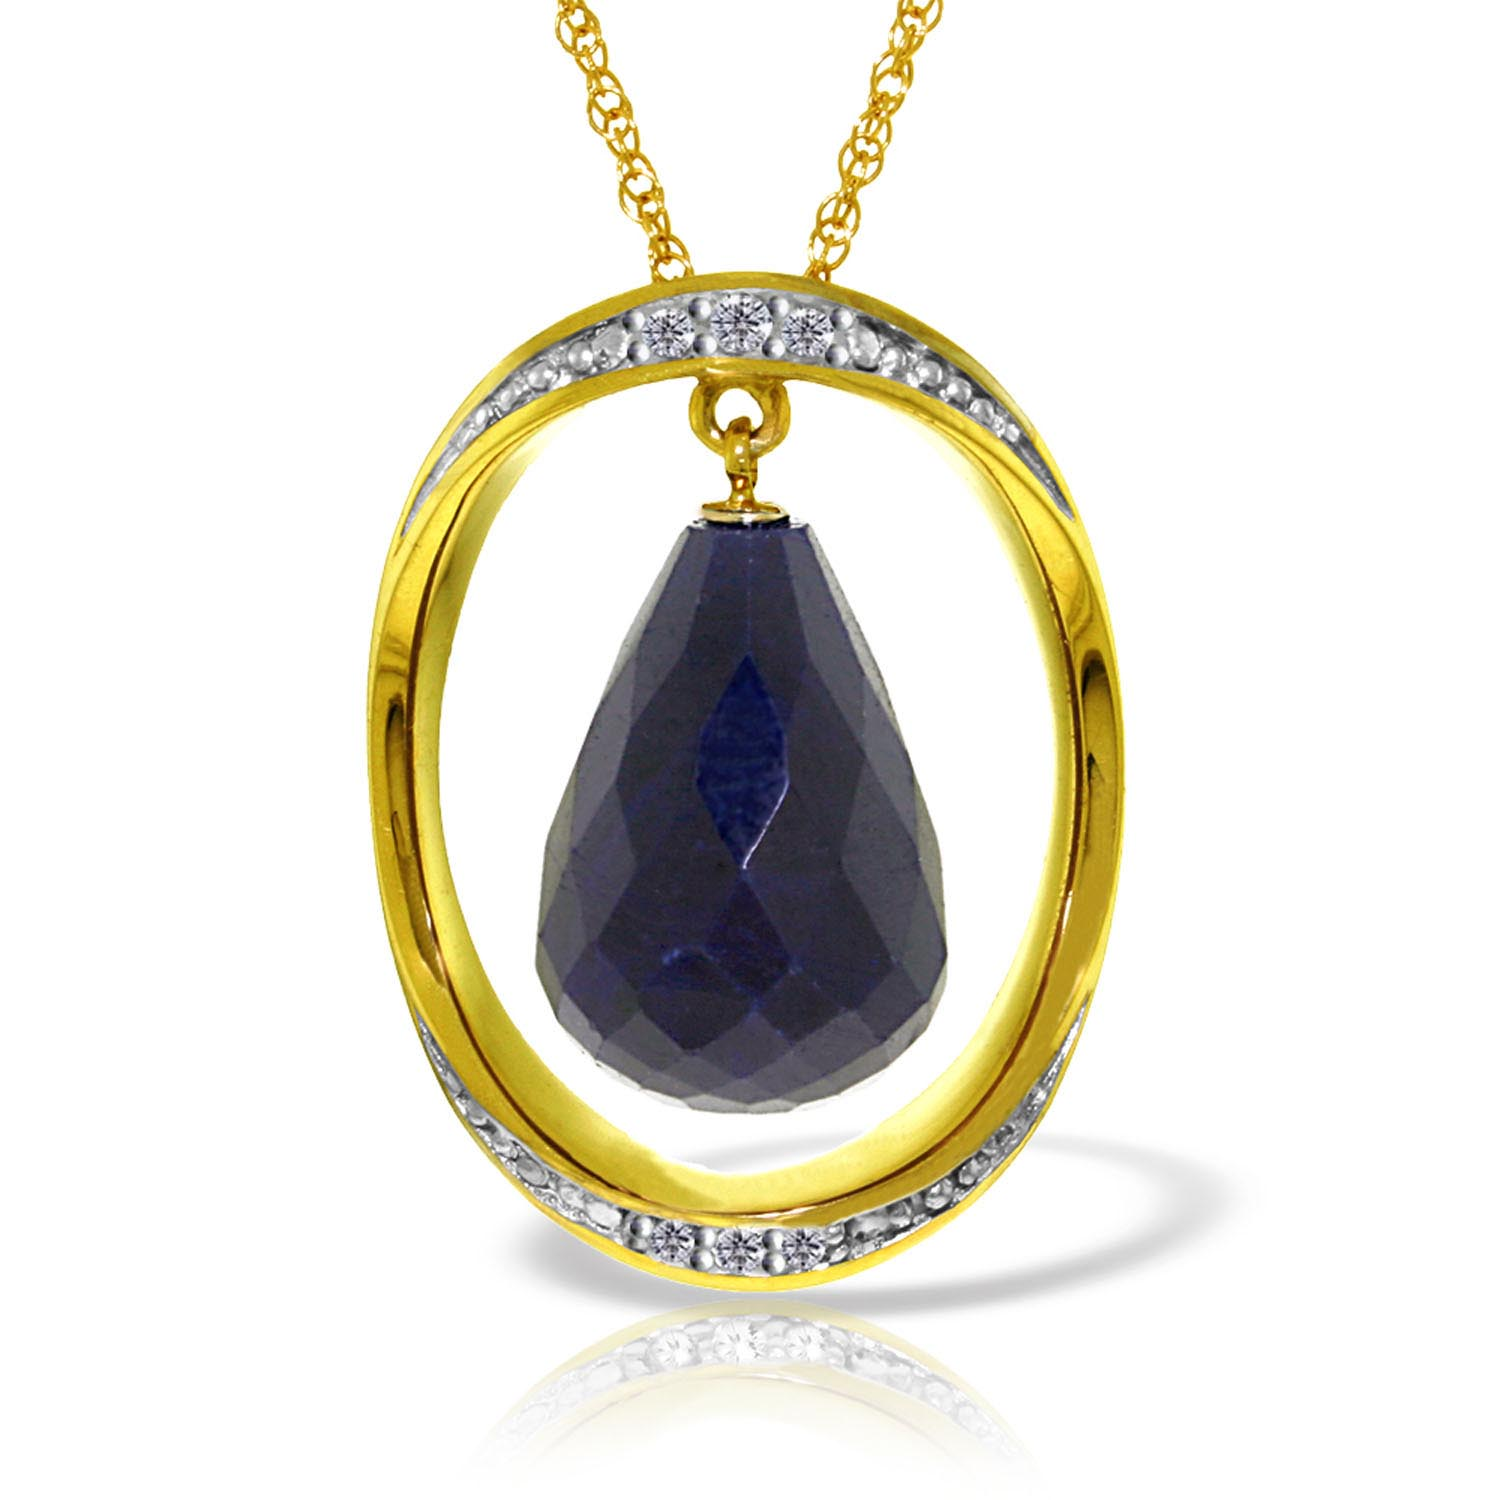 Sapphire and Diamond Pendant Necklace 13.5ct in 9ct Gold